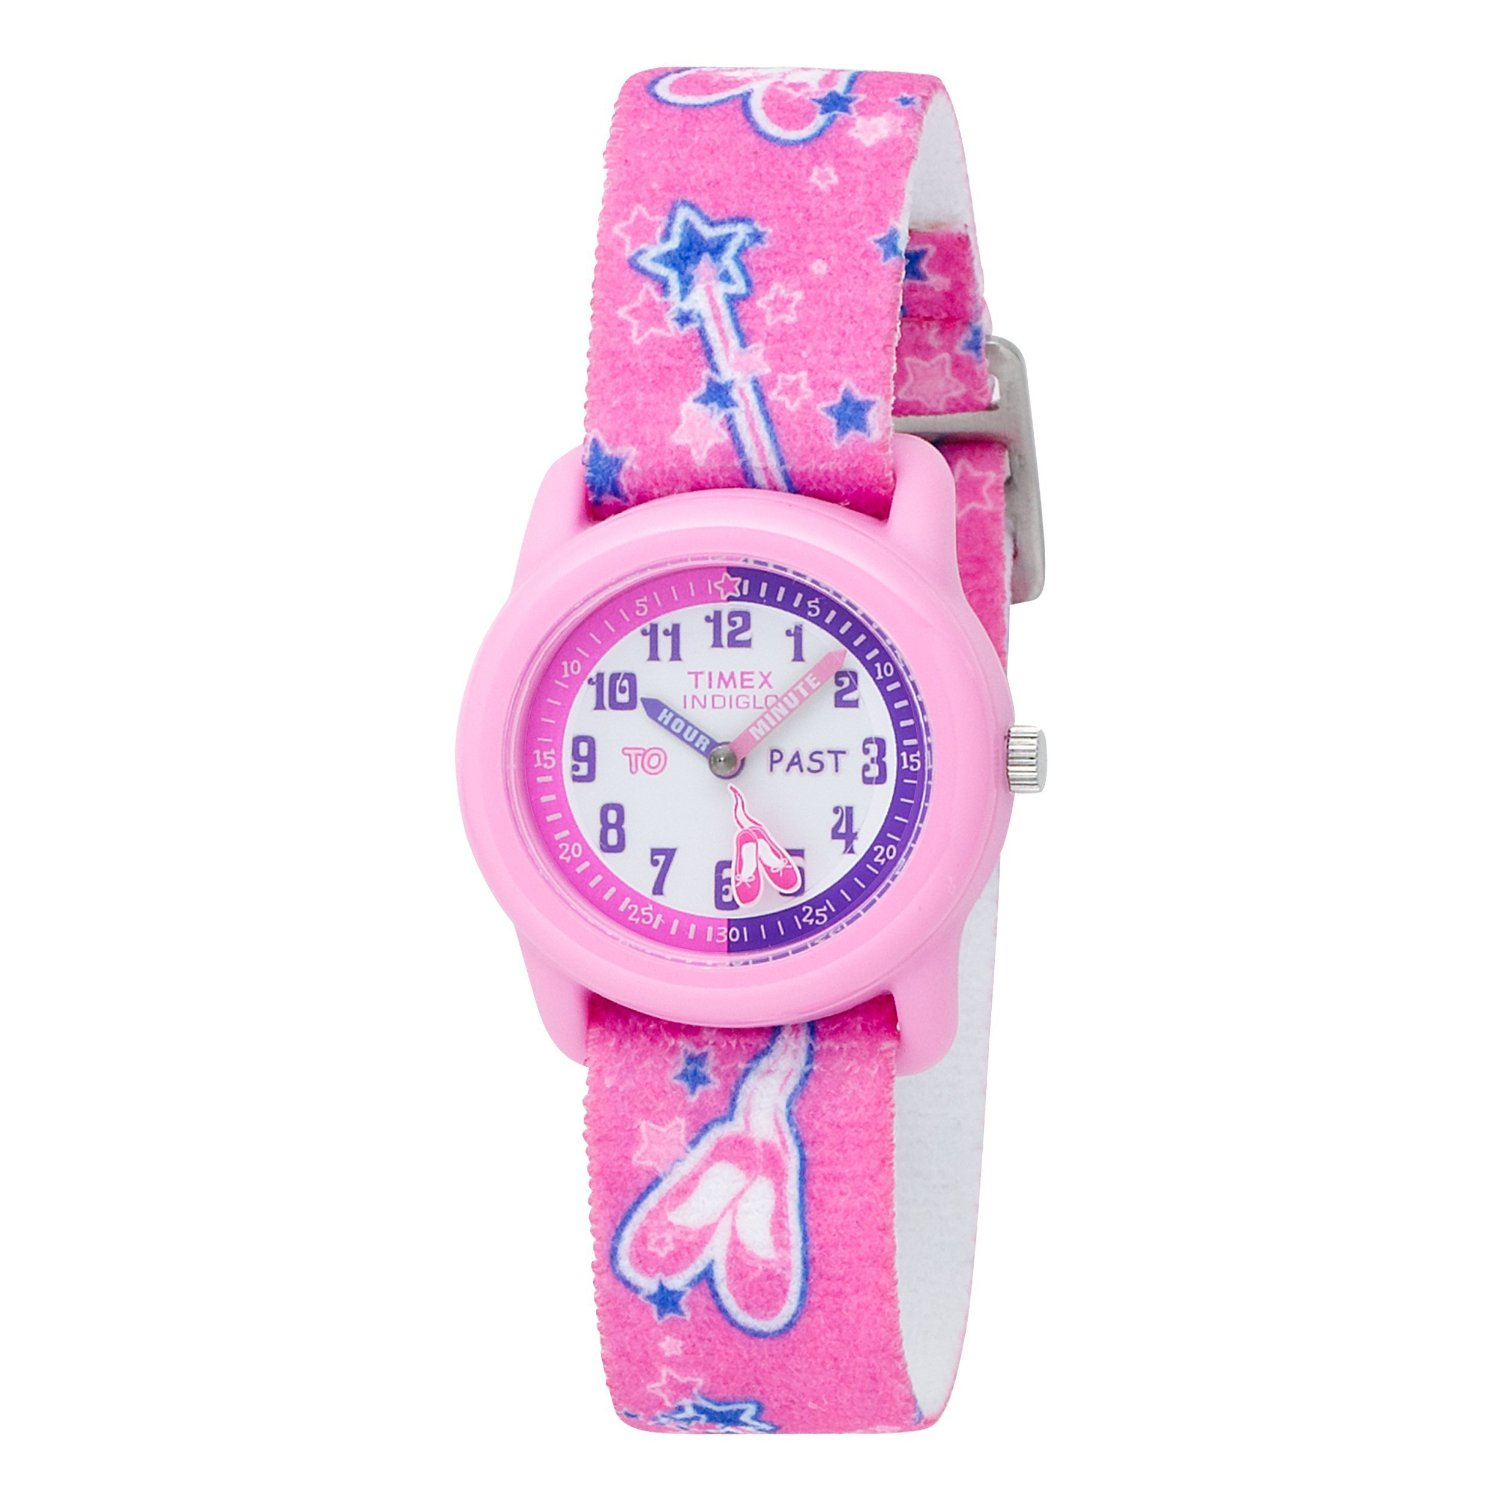 Wrist watches for girls dulha dulhan for Watches for kids